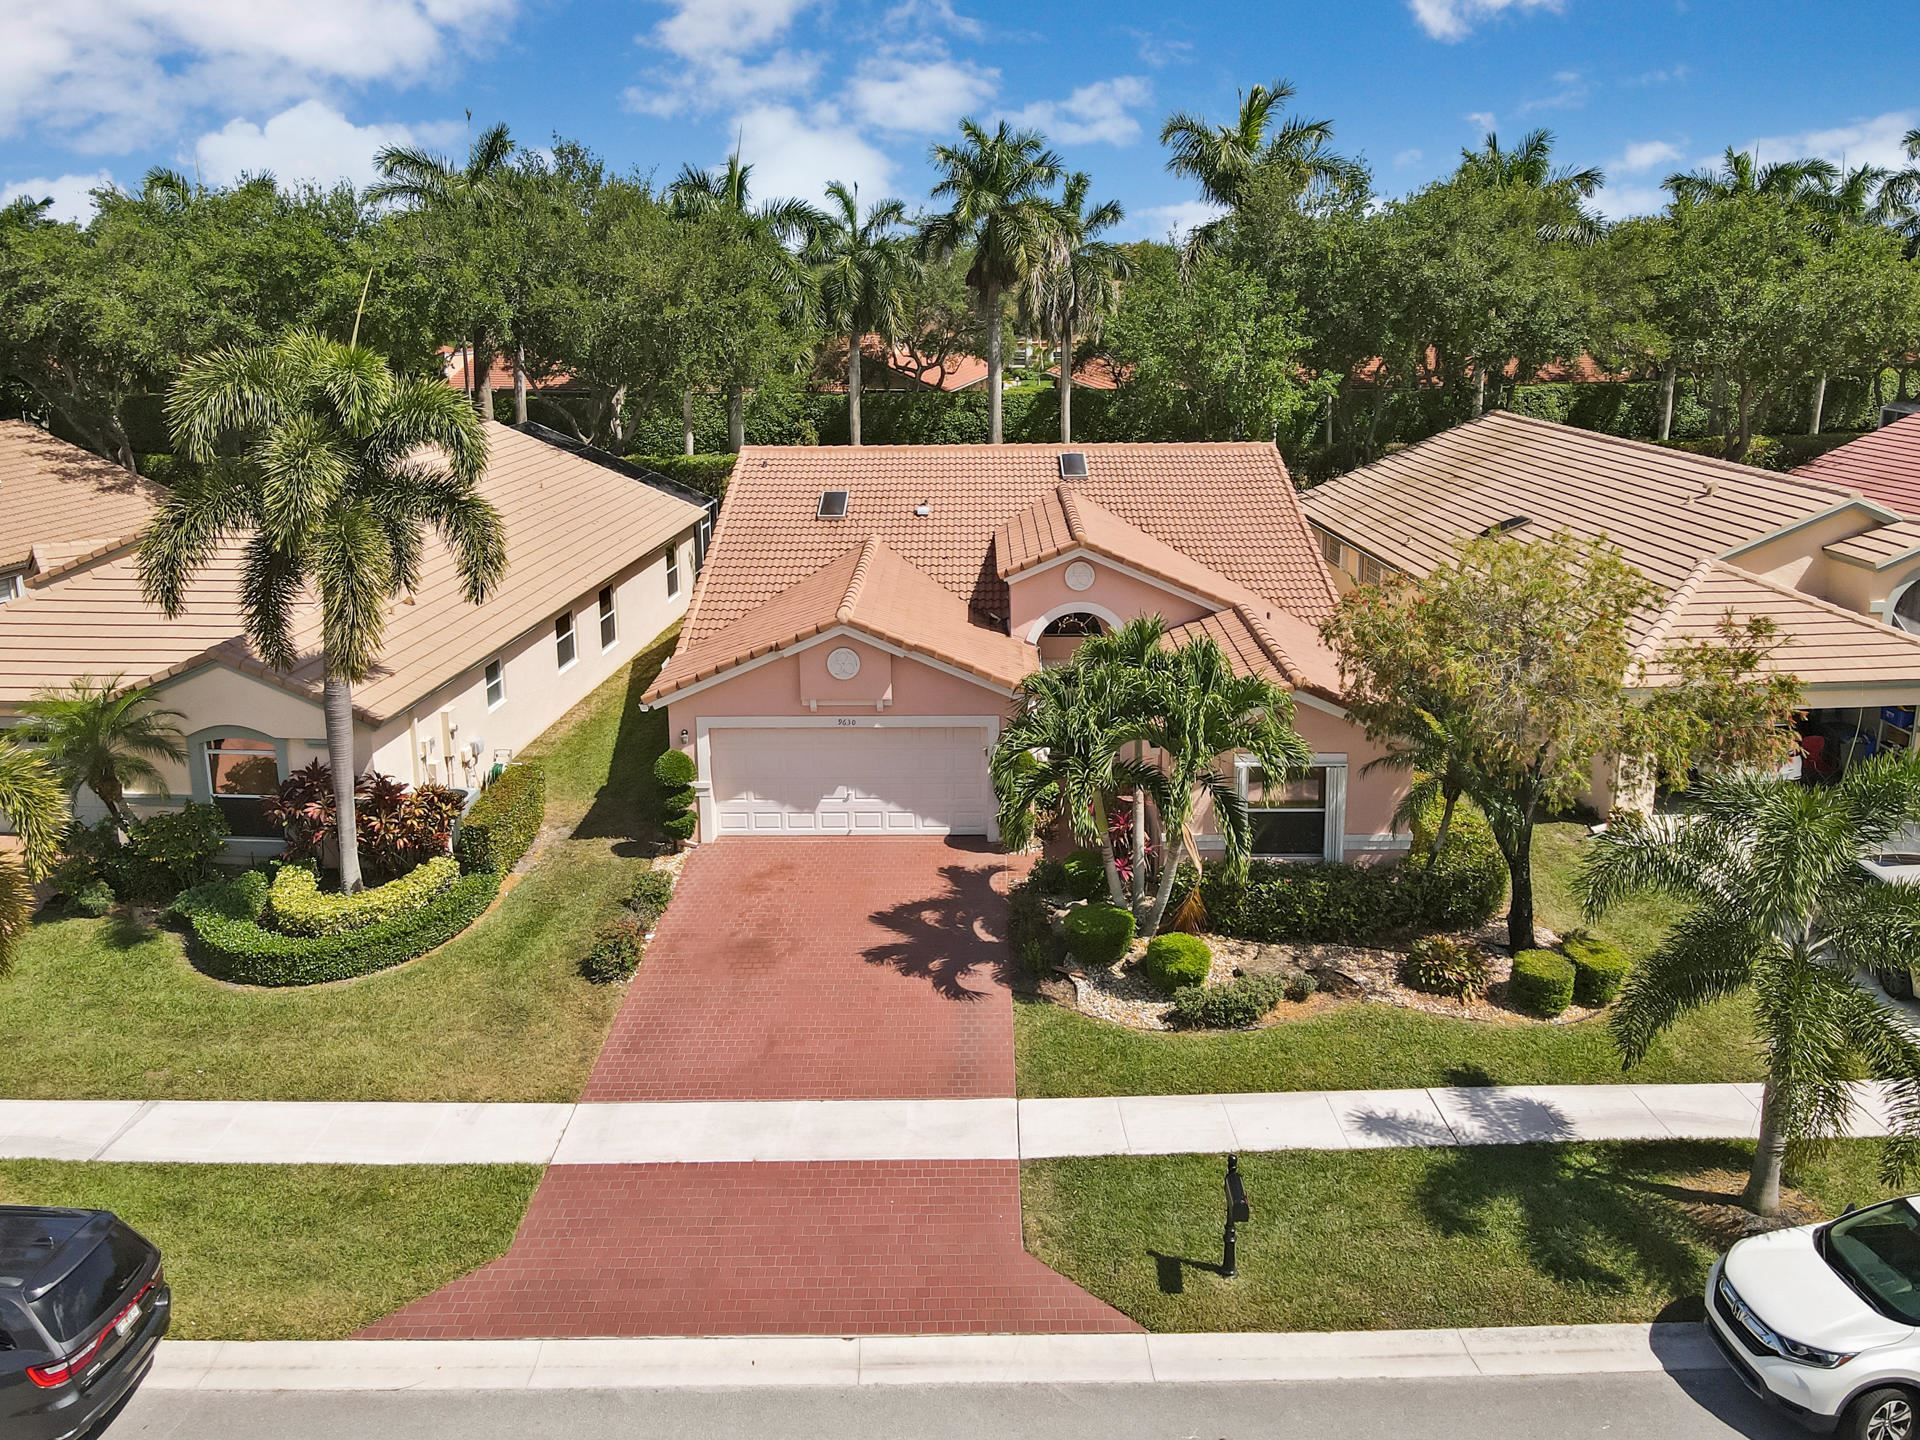 9630 Harbour Lake Circle, Boynton Beach, FL 33437 - MLS#: RX-10704465